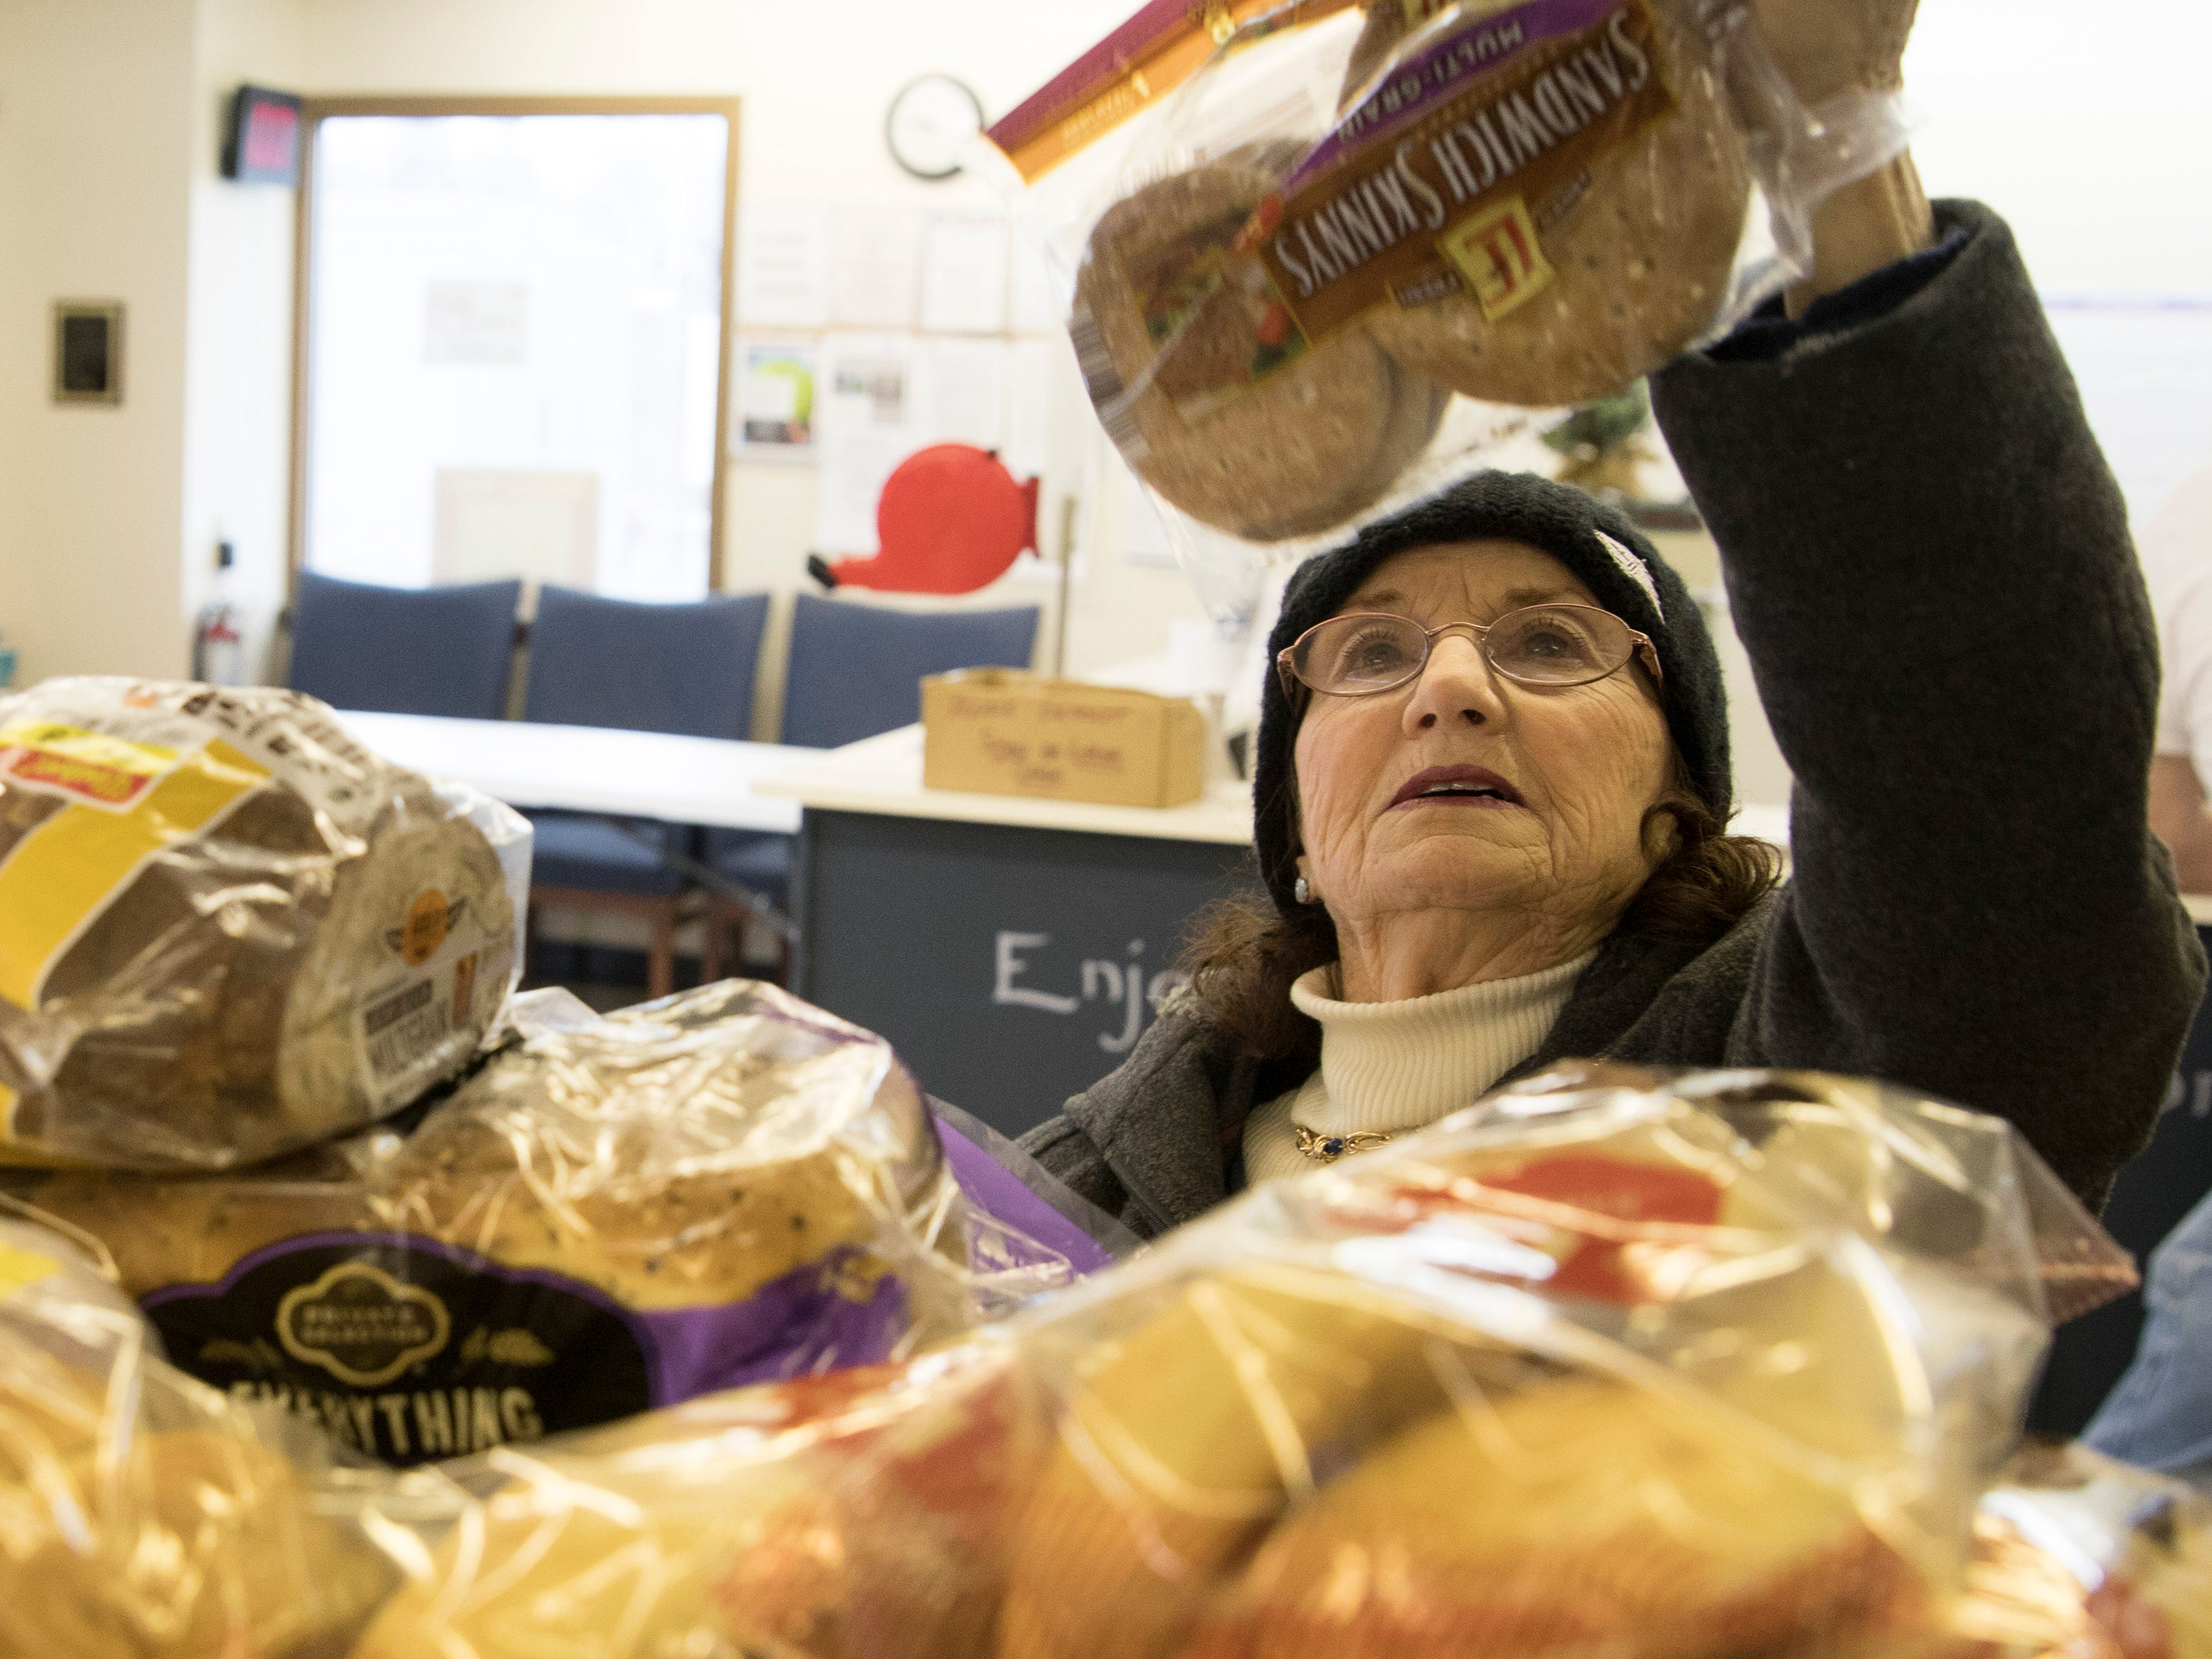 Edie Adkins picks out some bread at the Good Samaritan Food Pantry. Adkins, a 65-year resident of Chillicothe, occasionally comes to the food pantry, especially when she needs money for her bills.